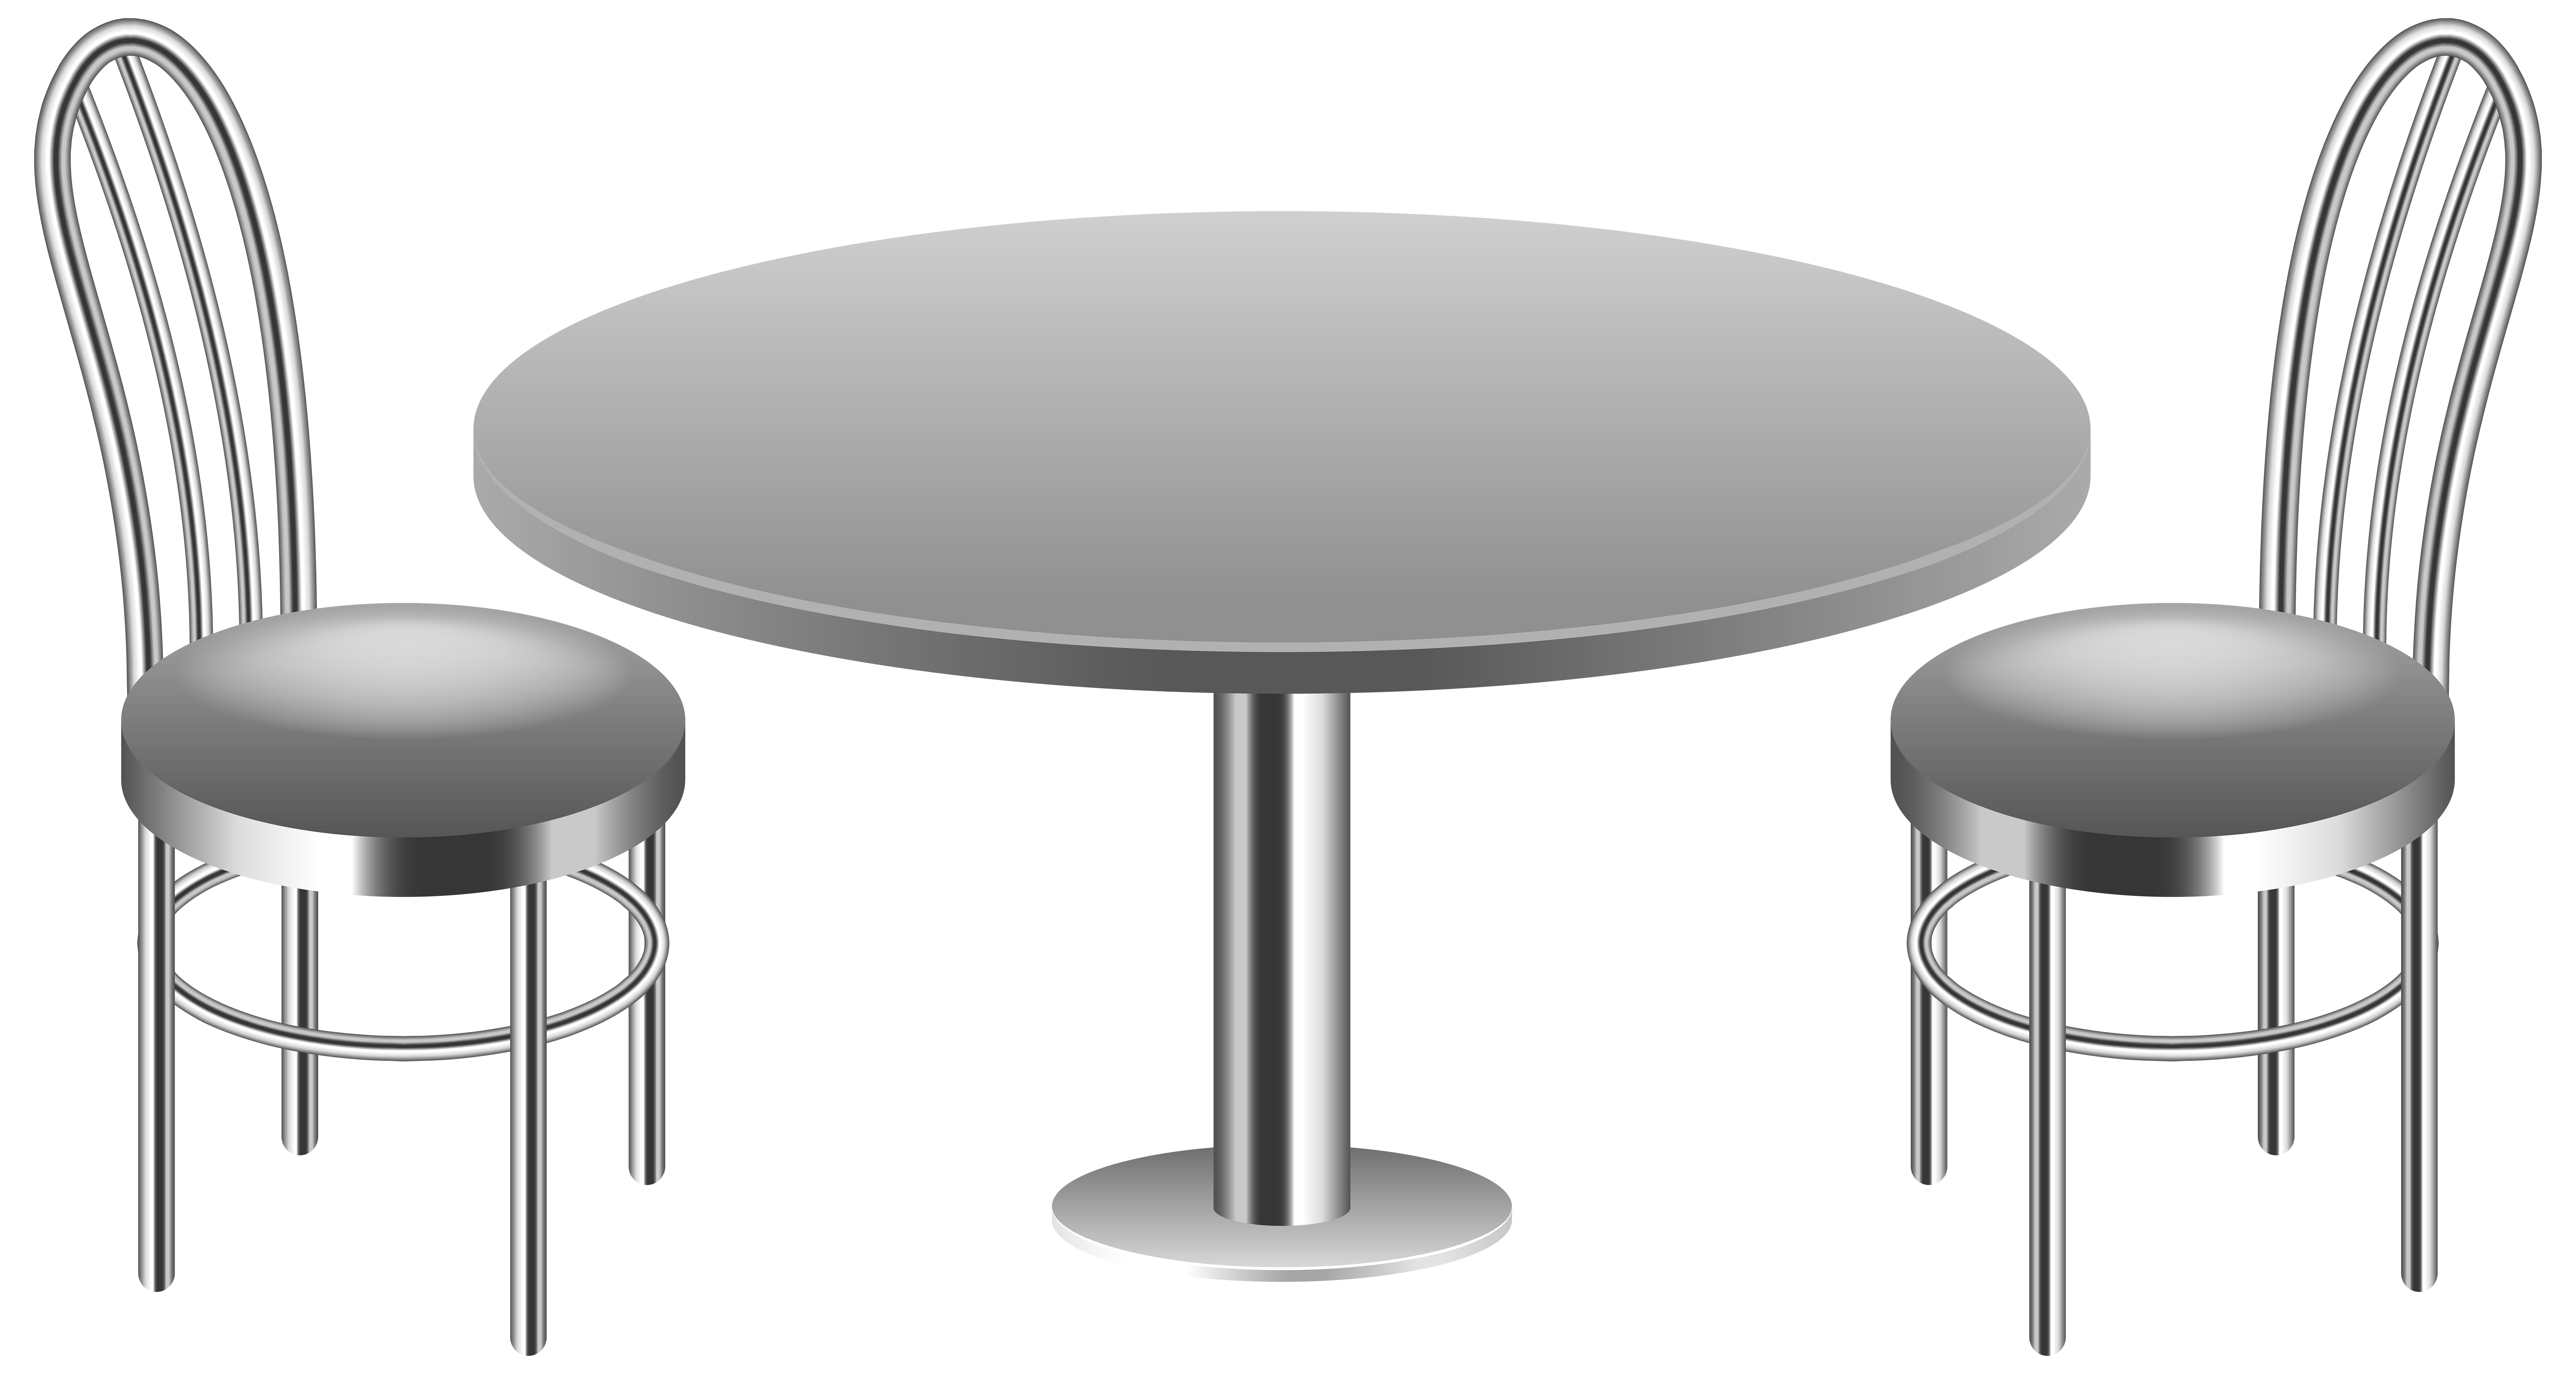 Clipart table table chair. With chairs transparent png